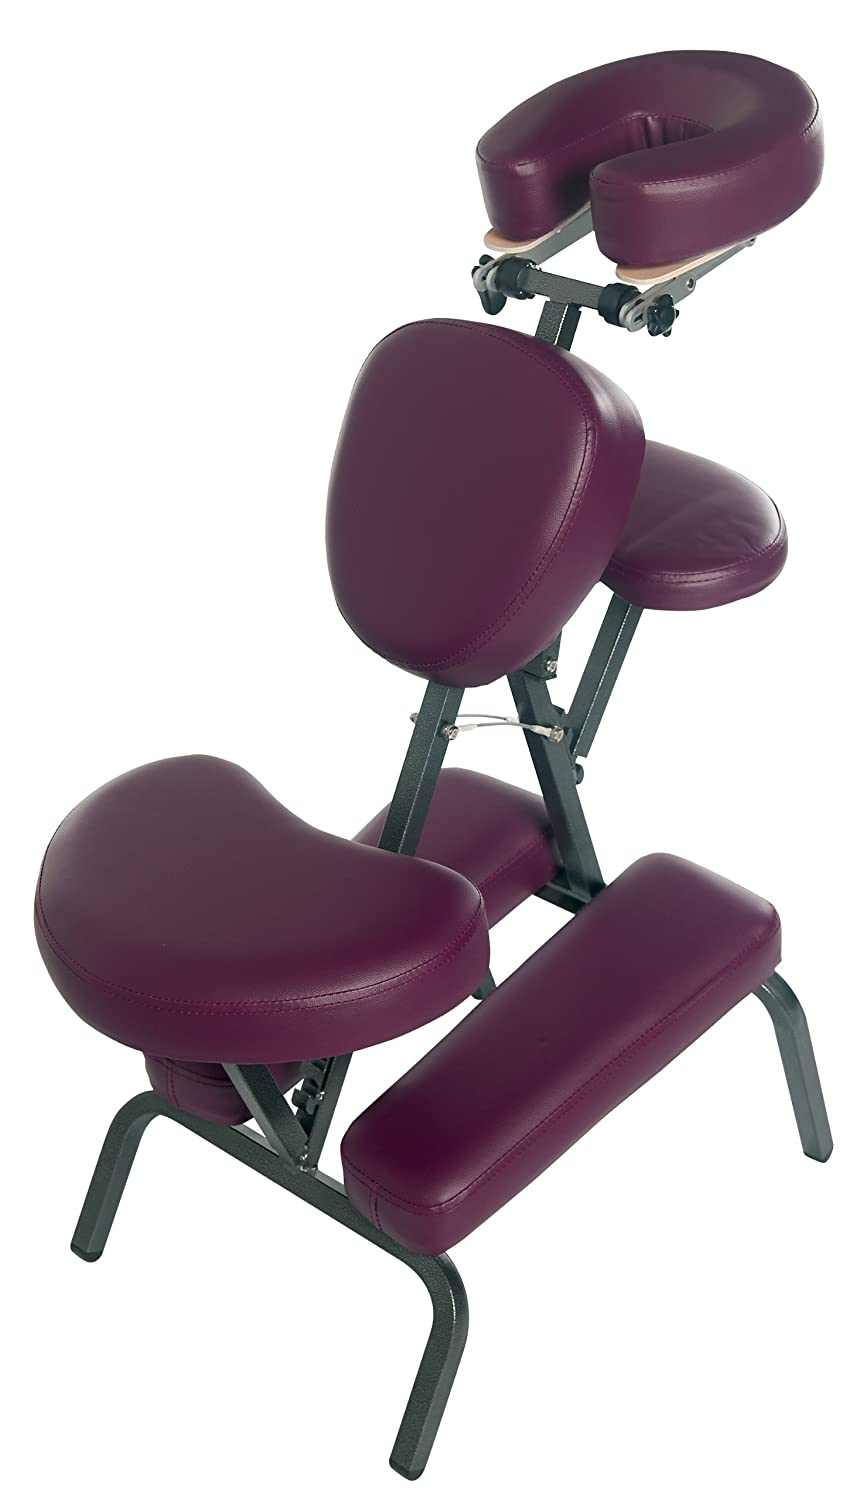 3B Scientific W60606BU-1 PVC Vinyl Pro Massage Chair, 500-Pound Capacity, Burgundy